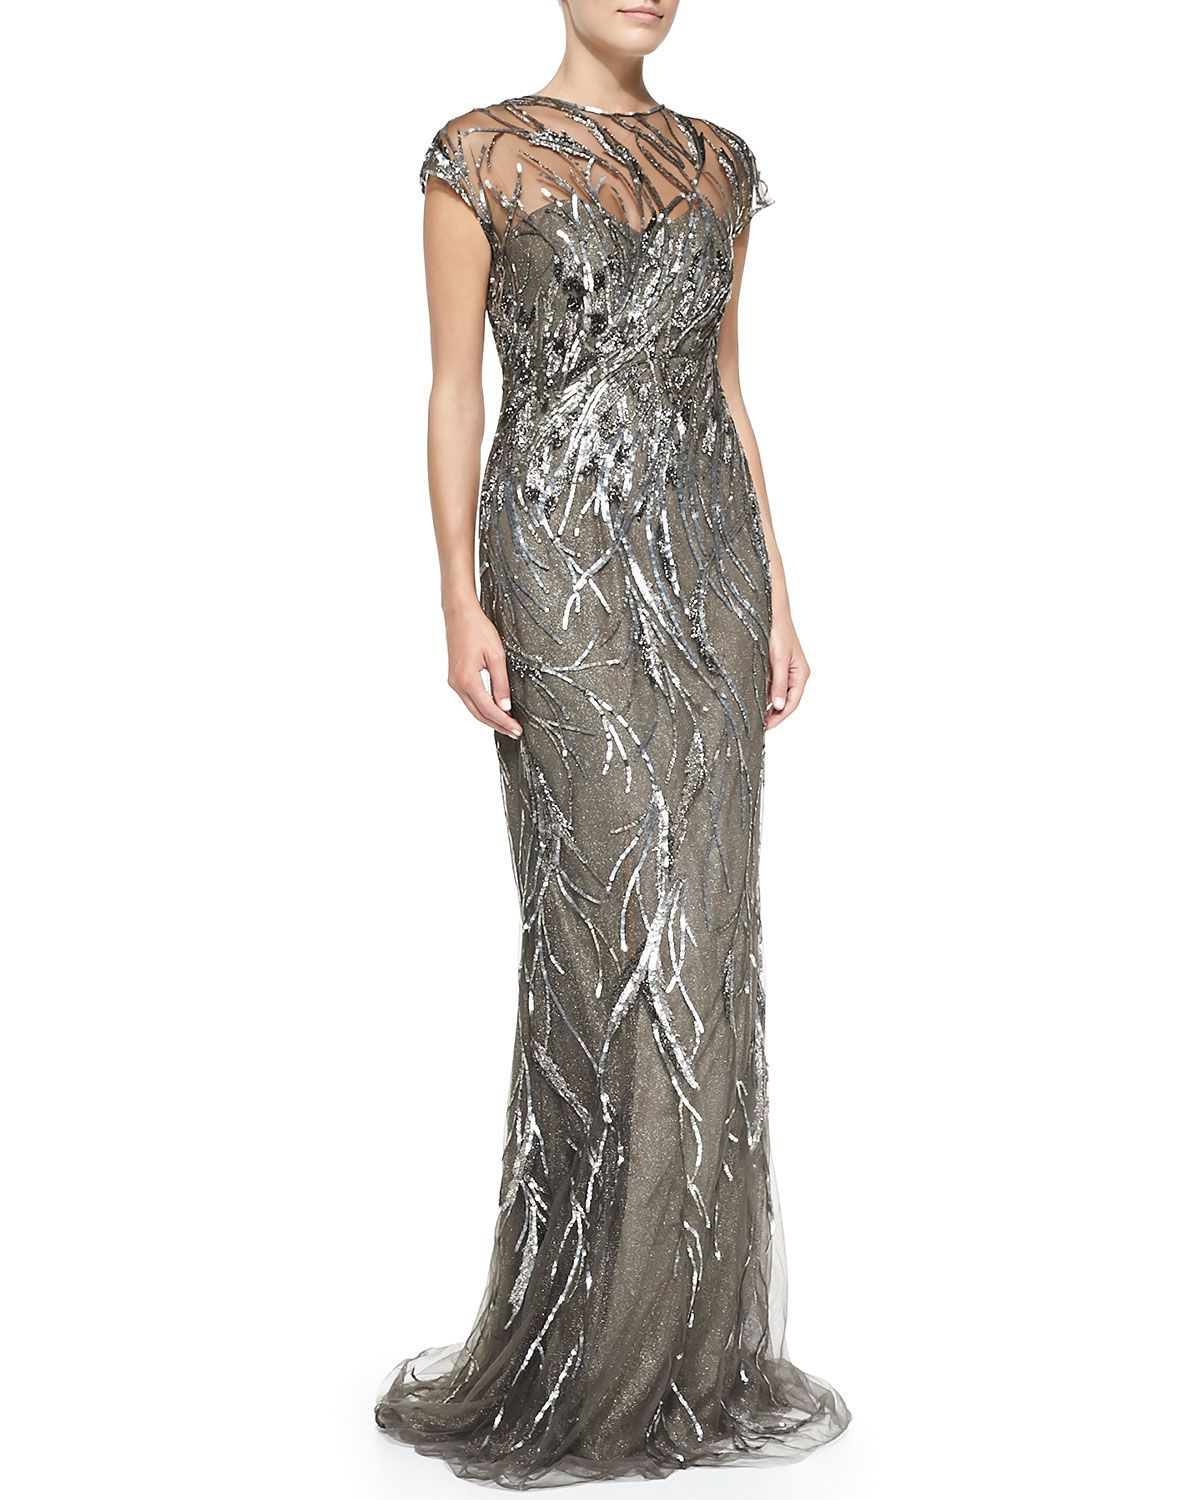 Cap-Sleeve Patterned Sequined Gown by Rene Ruiz at Neiman Marcus ...